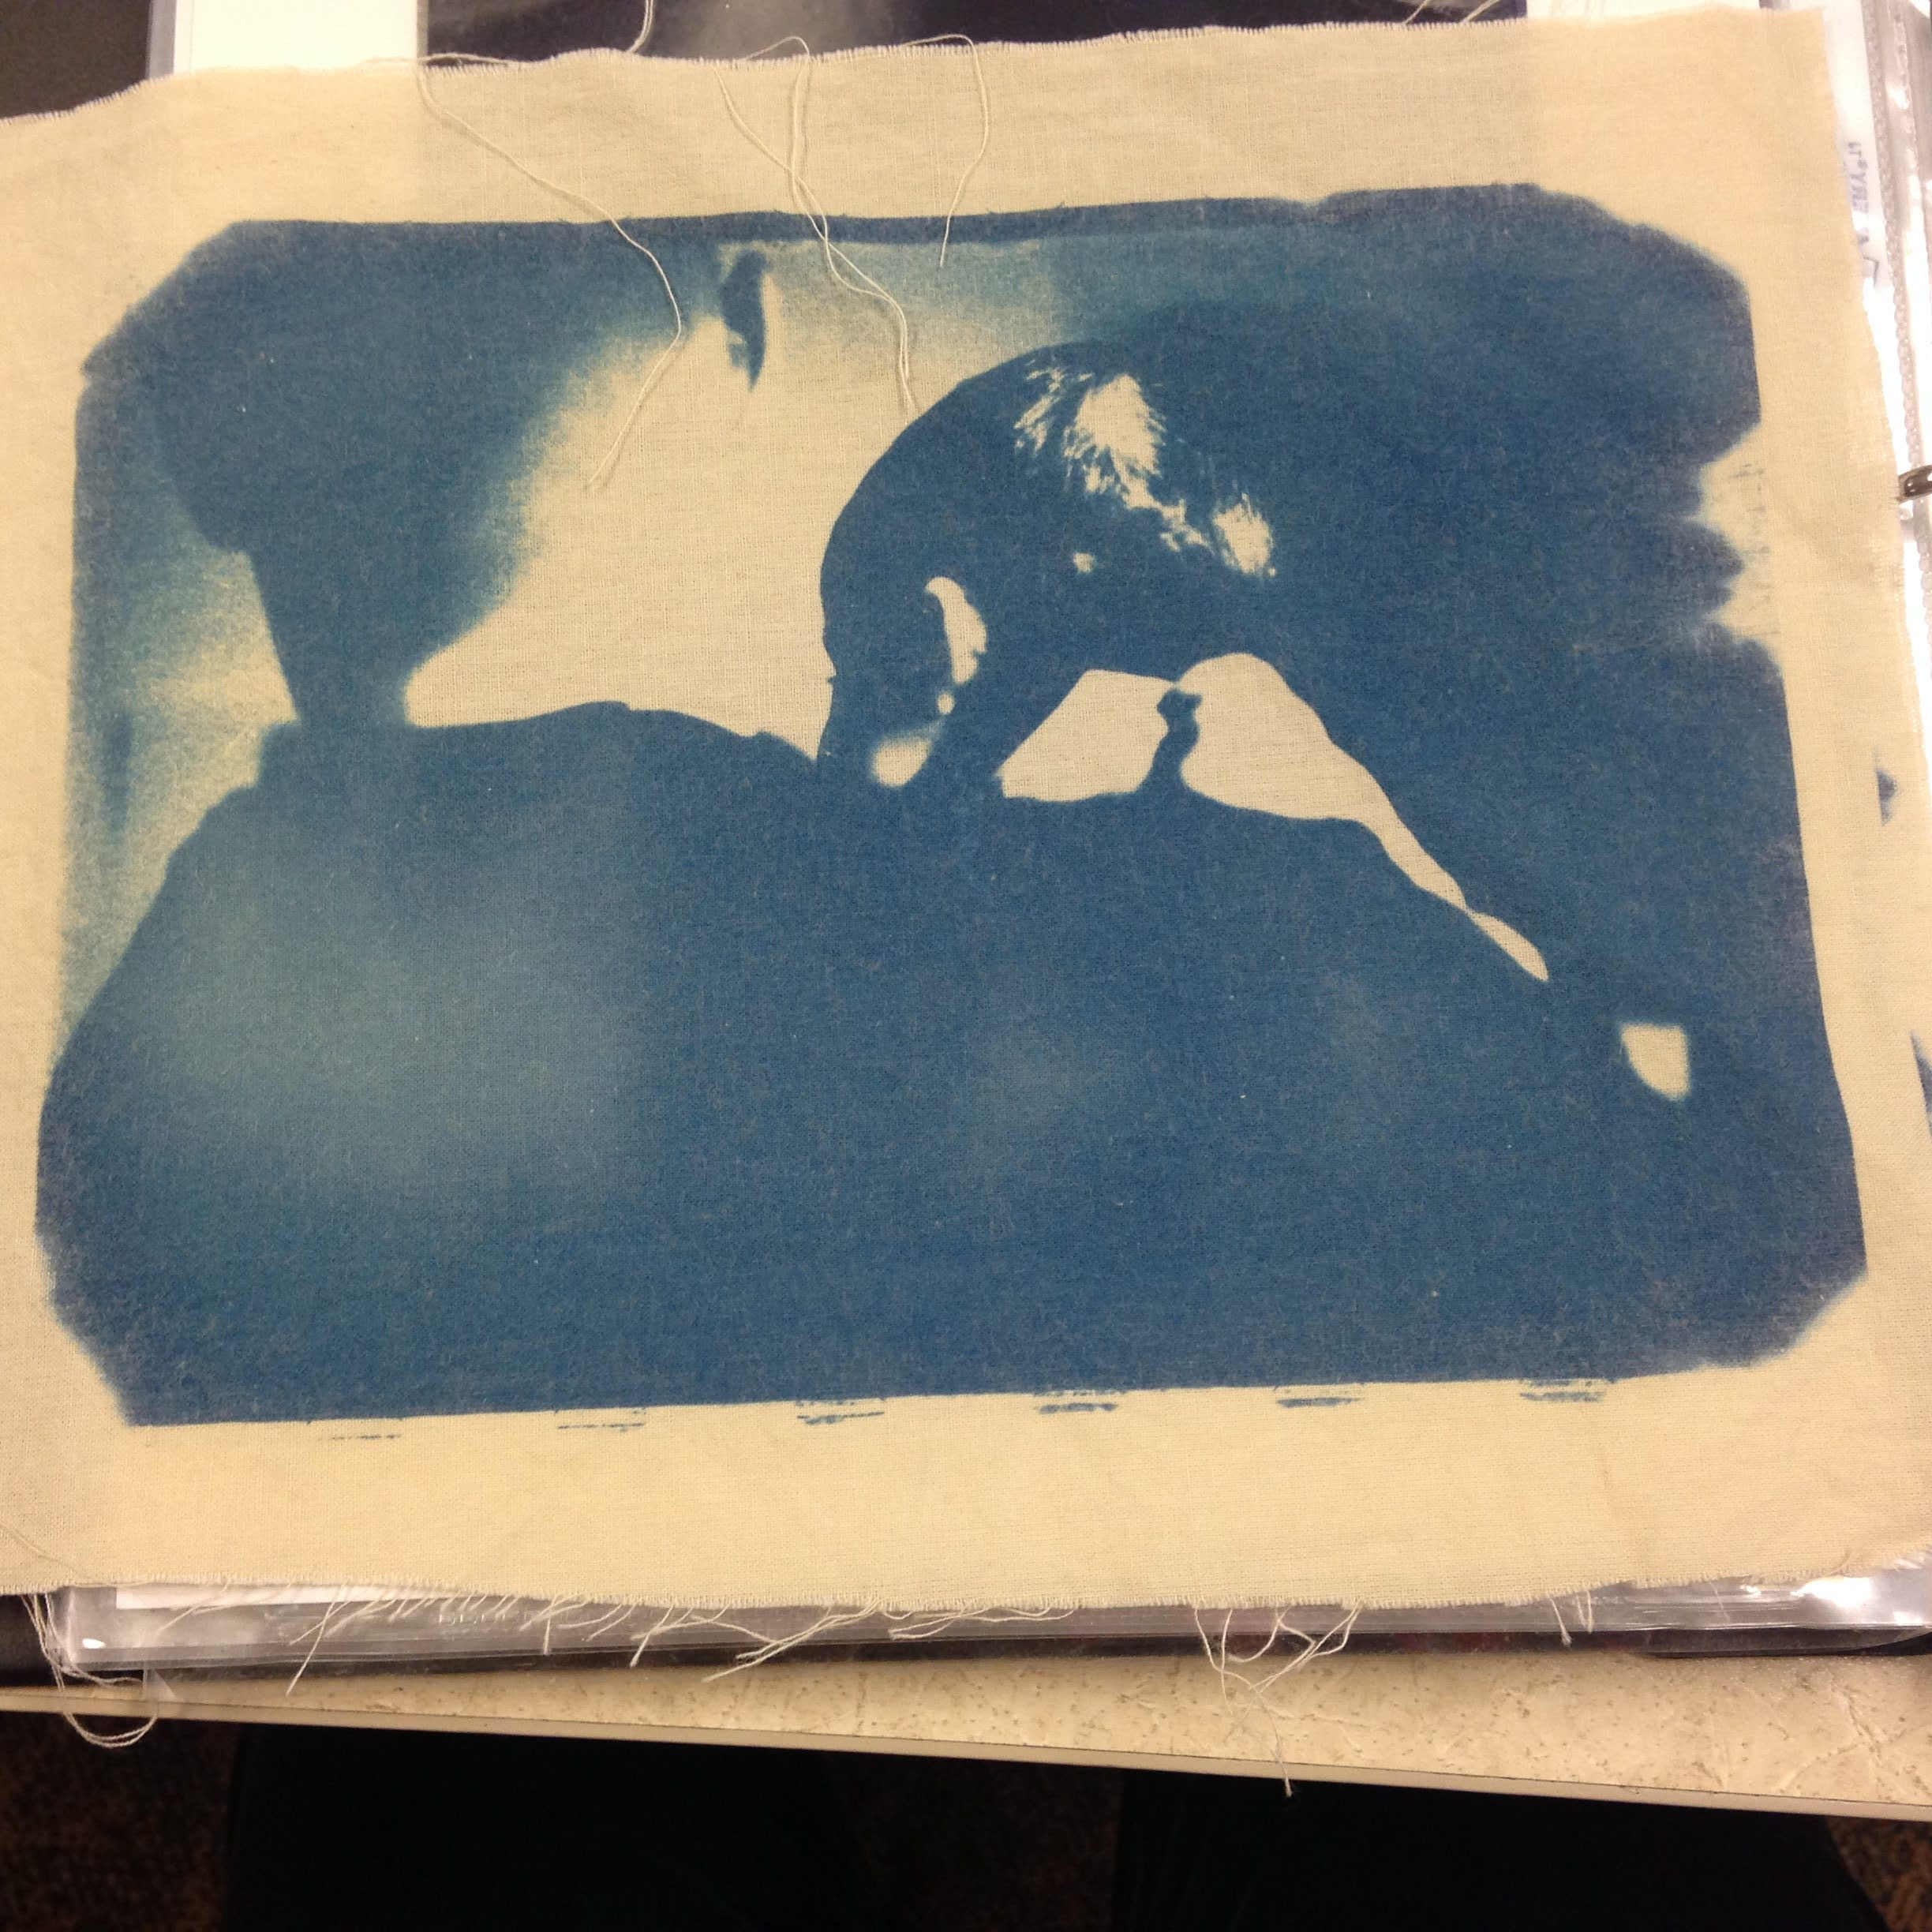 Cyanotype photograph on cloth.